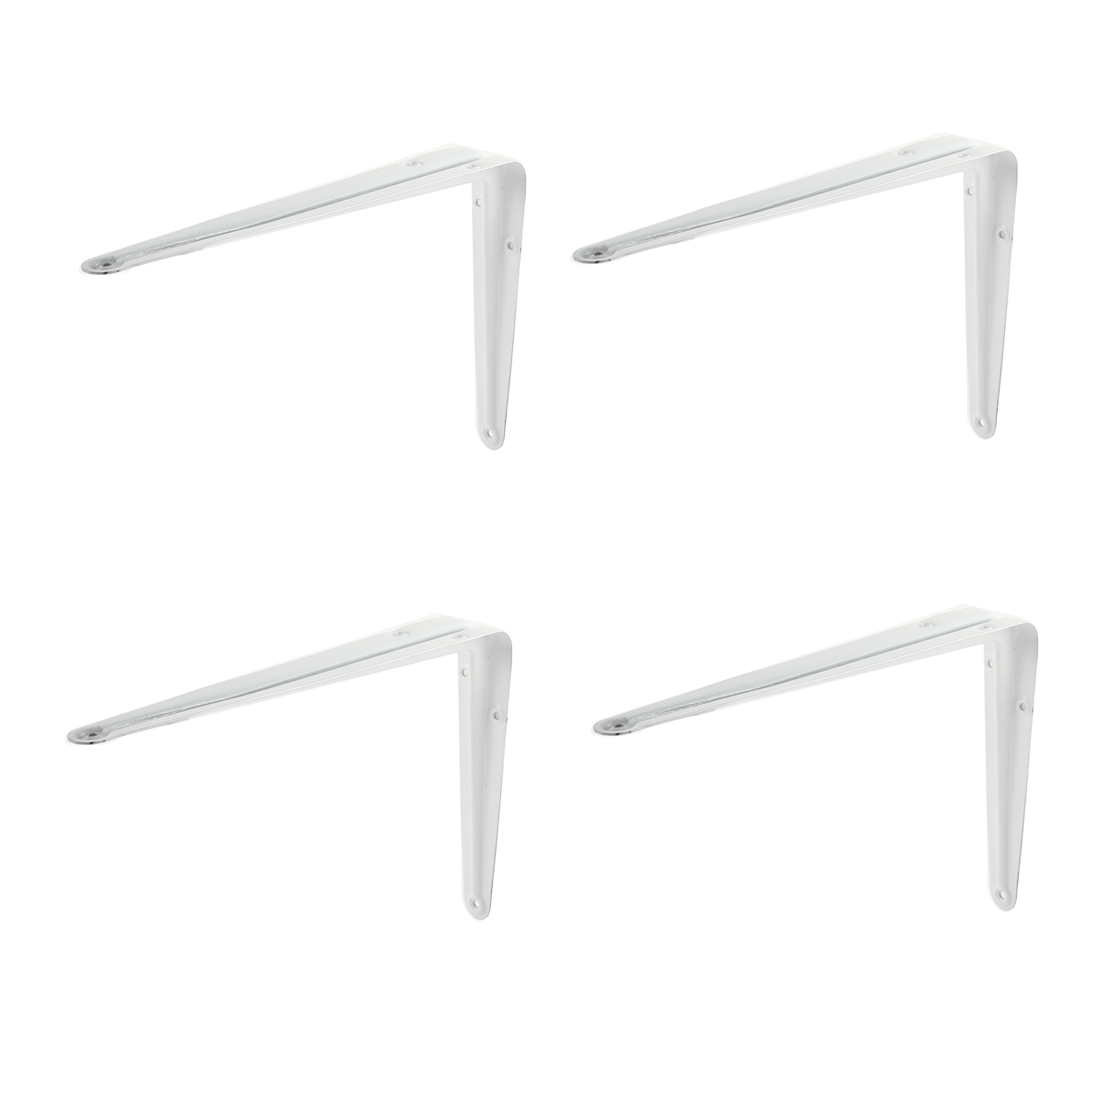 10 Inch Long Right Angle Baked Enamel Metal Wall Shelf Support Bracket 4 Pcs